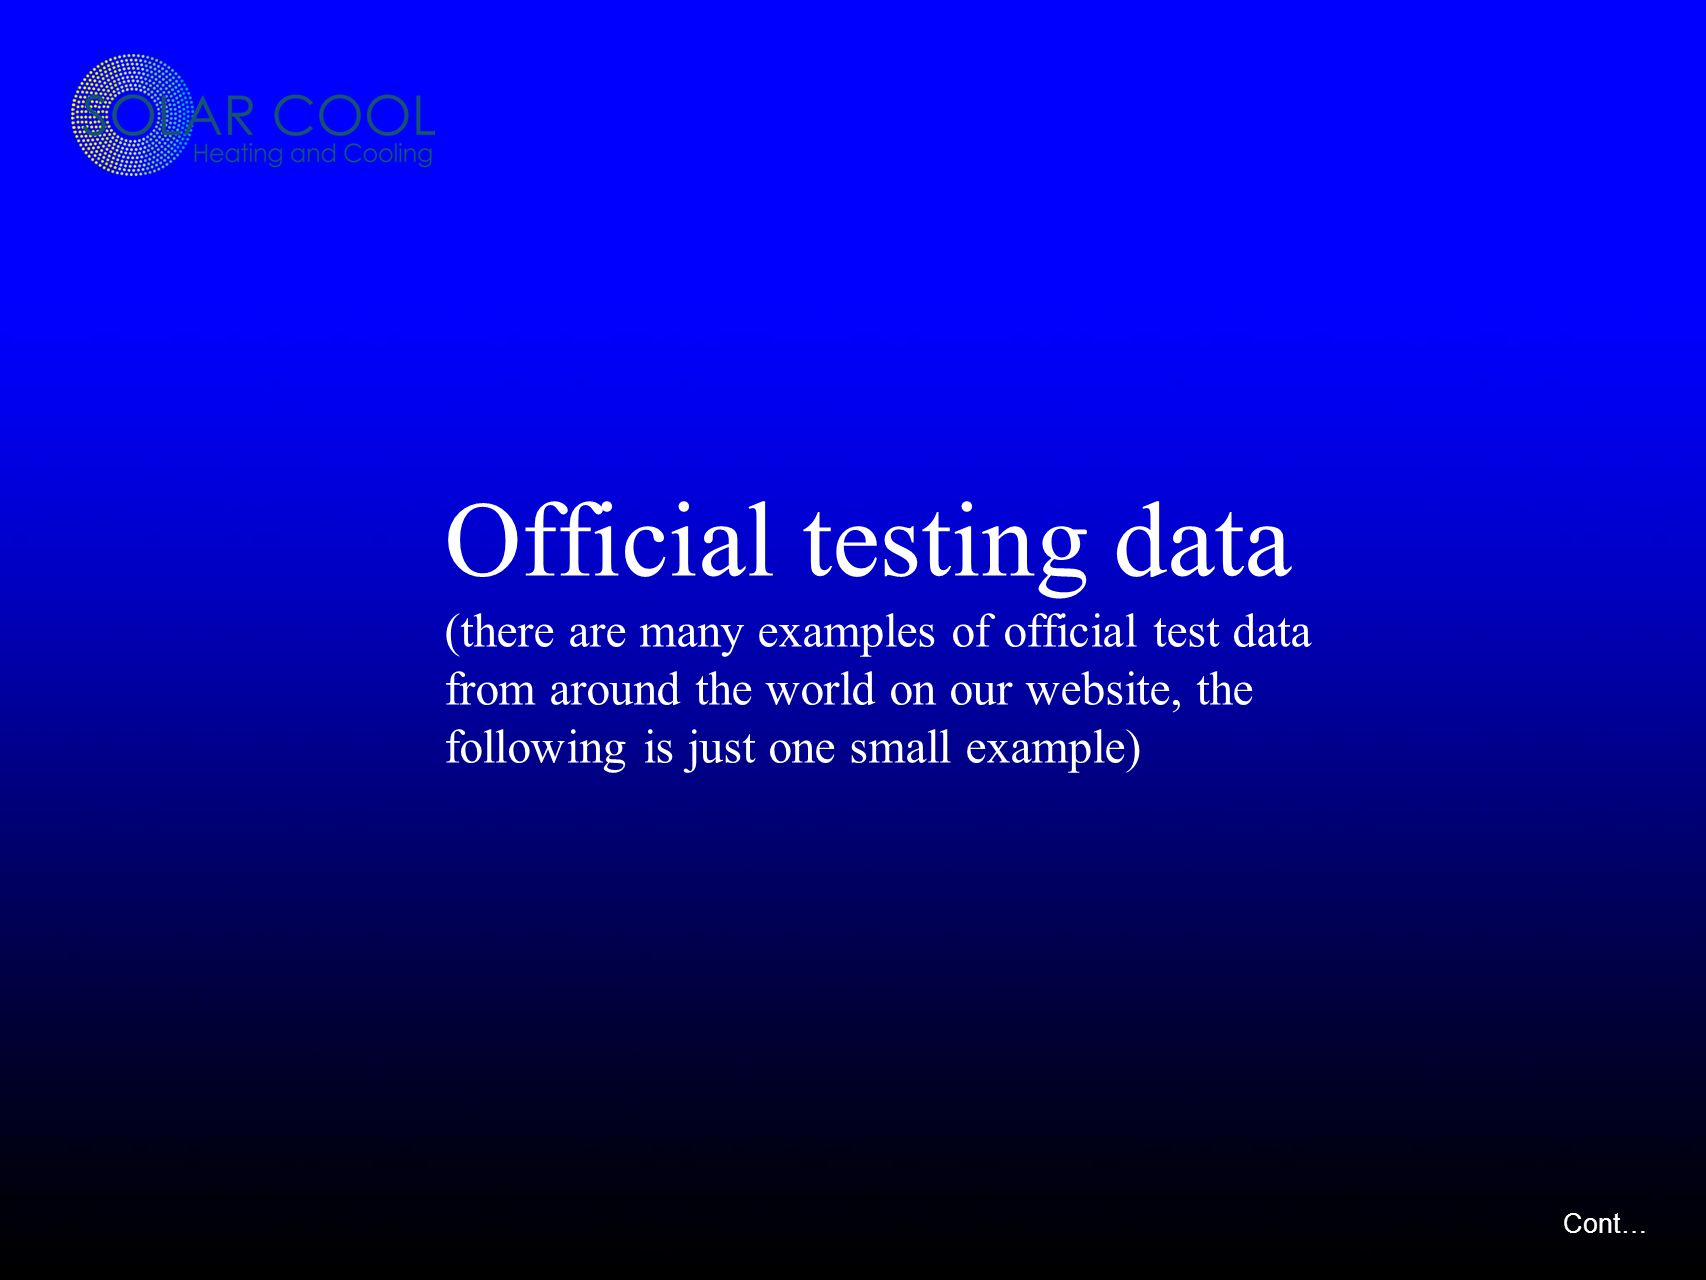 Official testing data (there are many examples of official test data from around the world on our website, the following is just one small example) Cont…